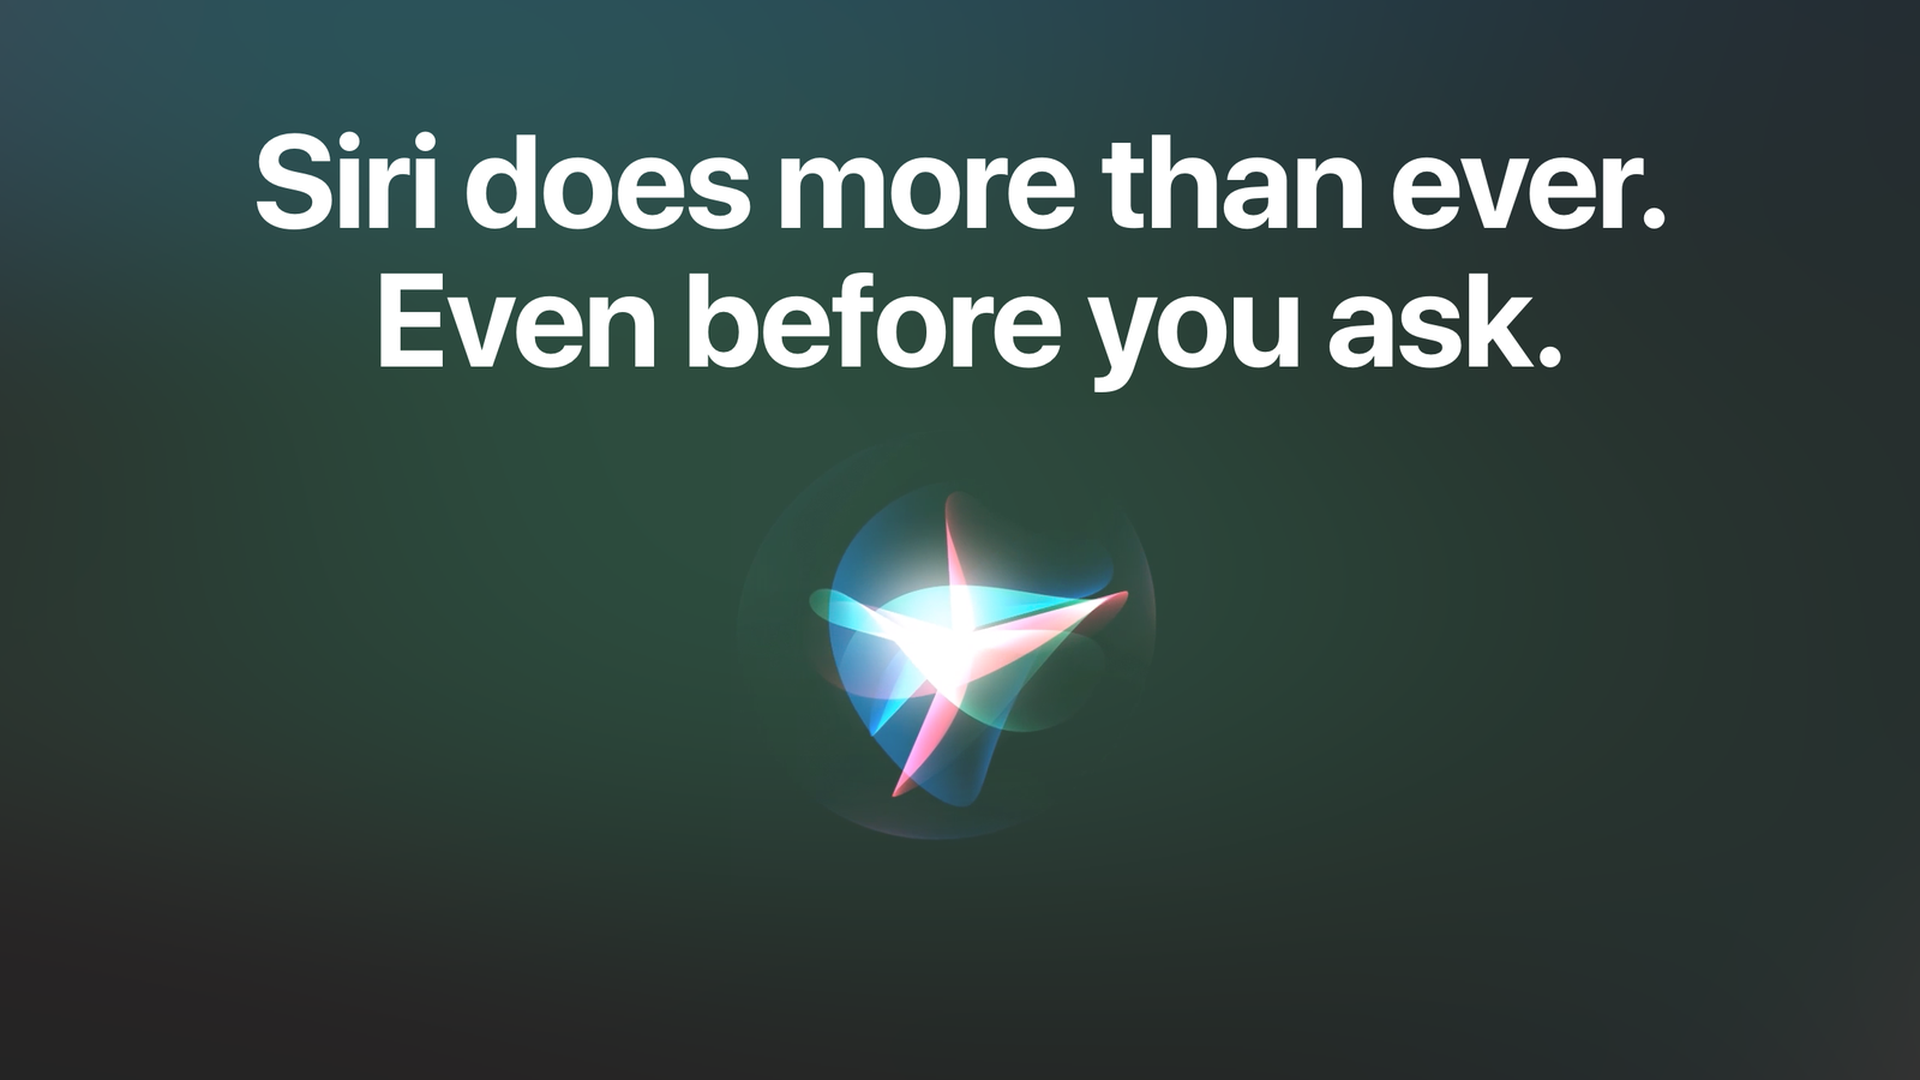 A screenshot from Apple.com touting that Siri does more than ever, even before you ask